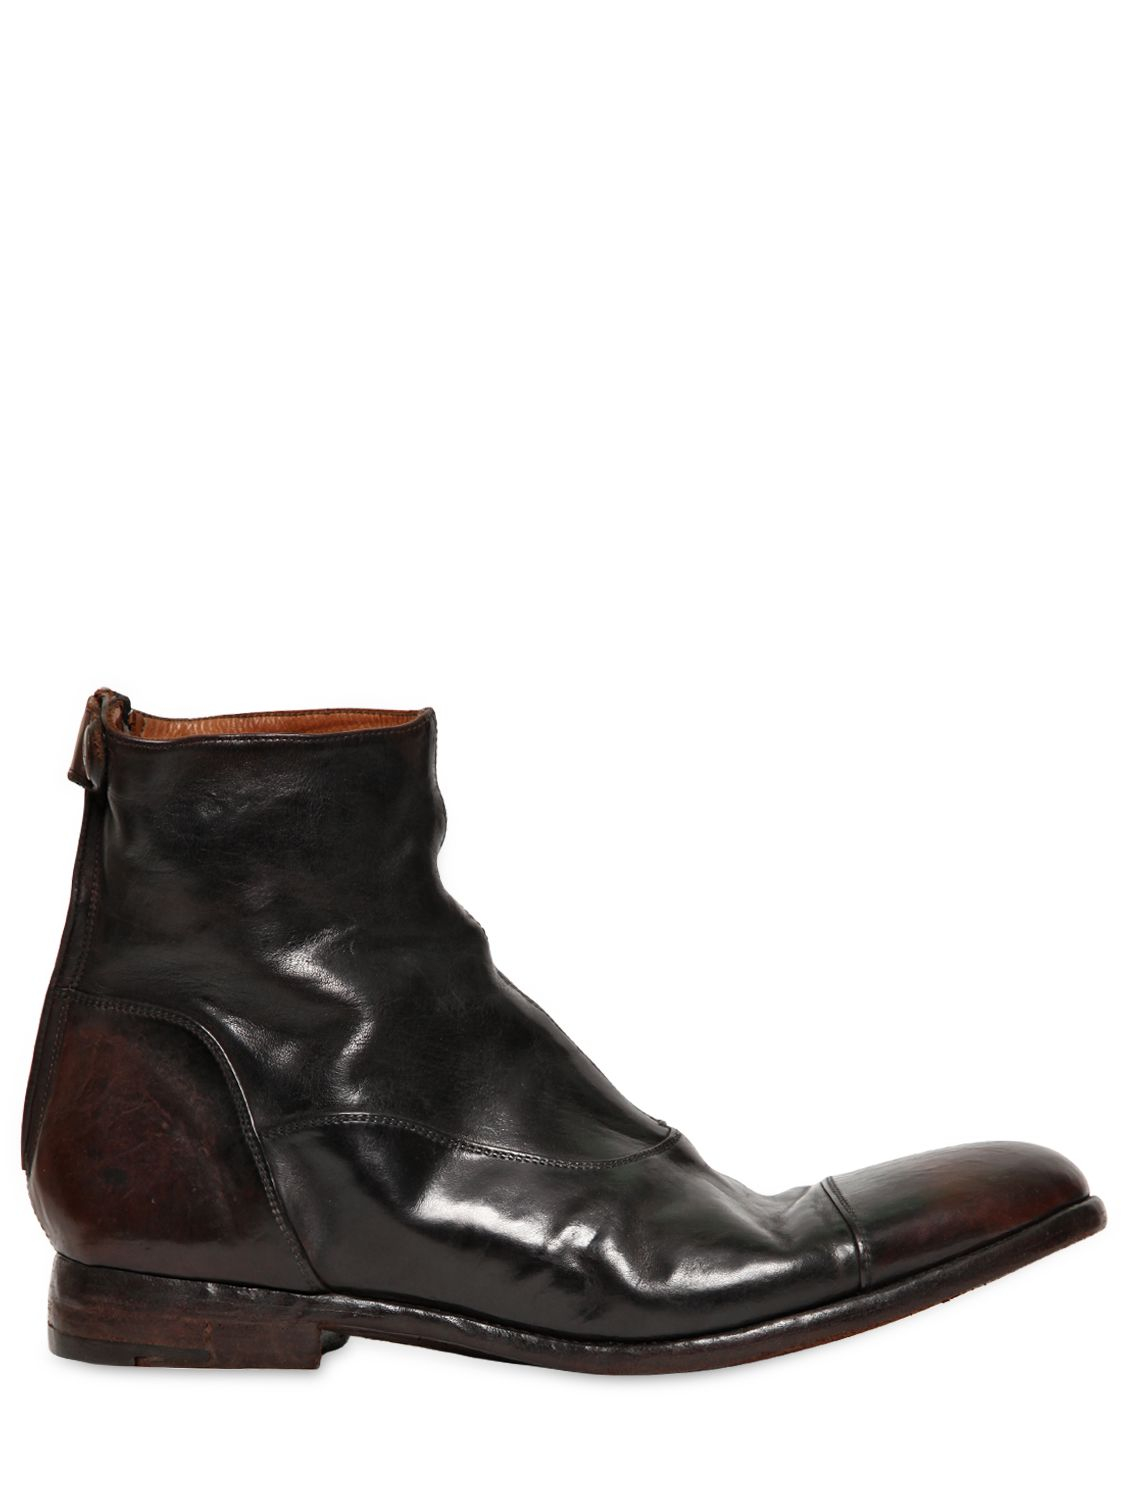 alberto fasciani vintage leather low boots in black